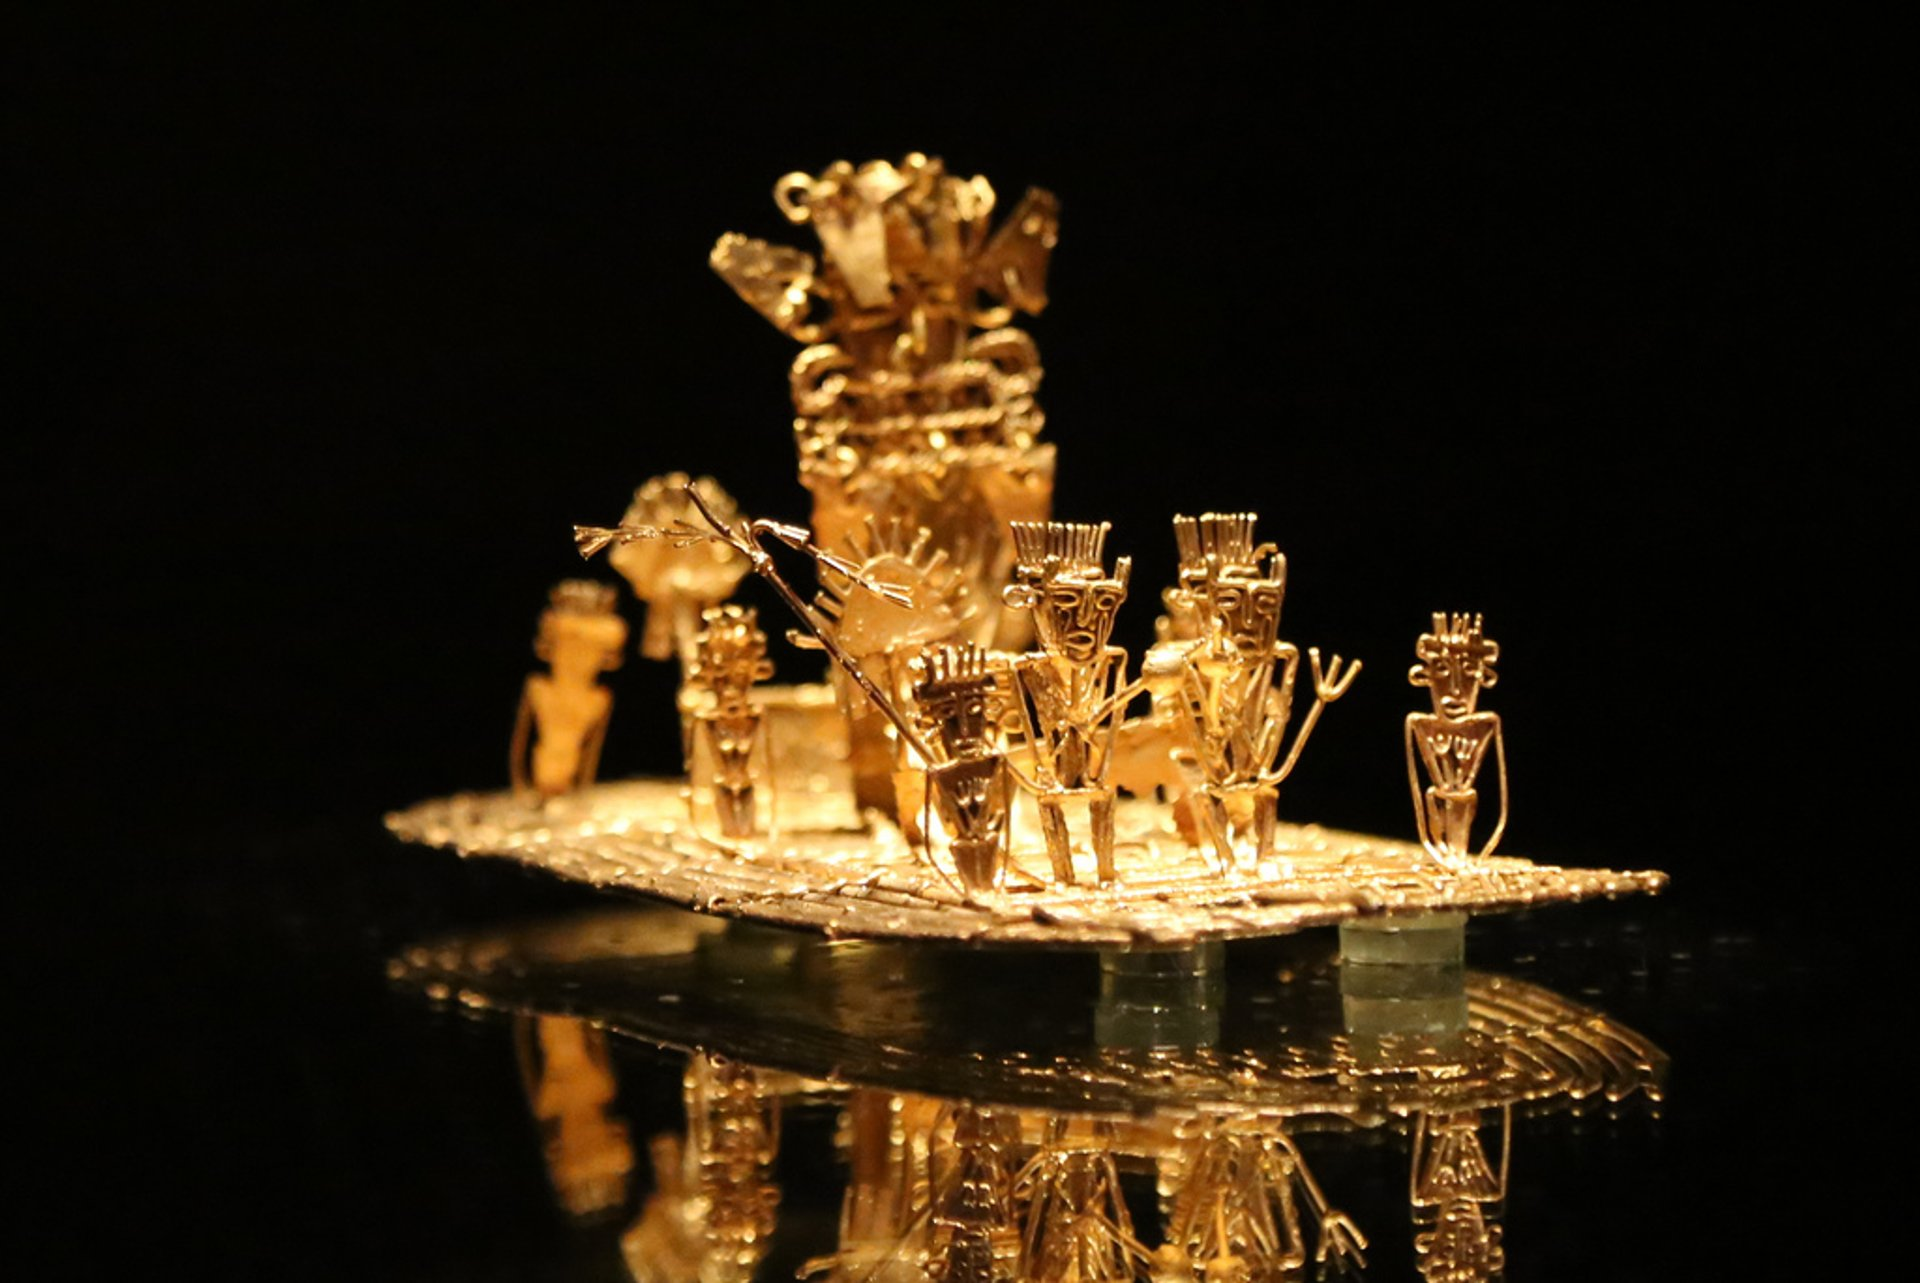 Museo del Oro (Gold Museum) in Bogota in Colombia 2020 - Best Time